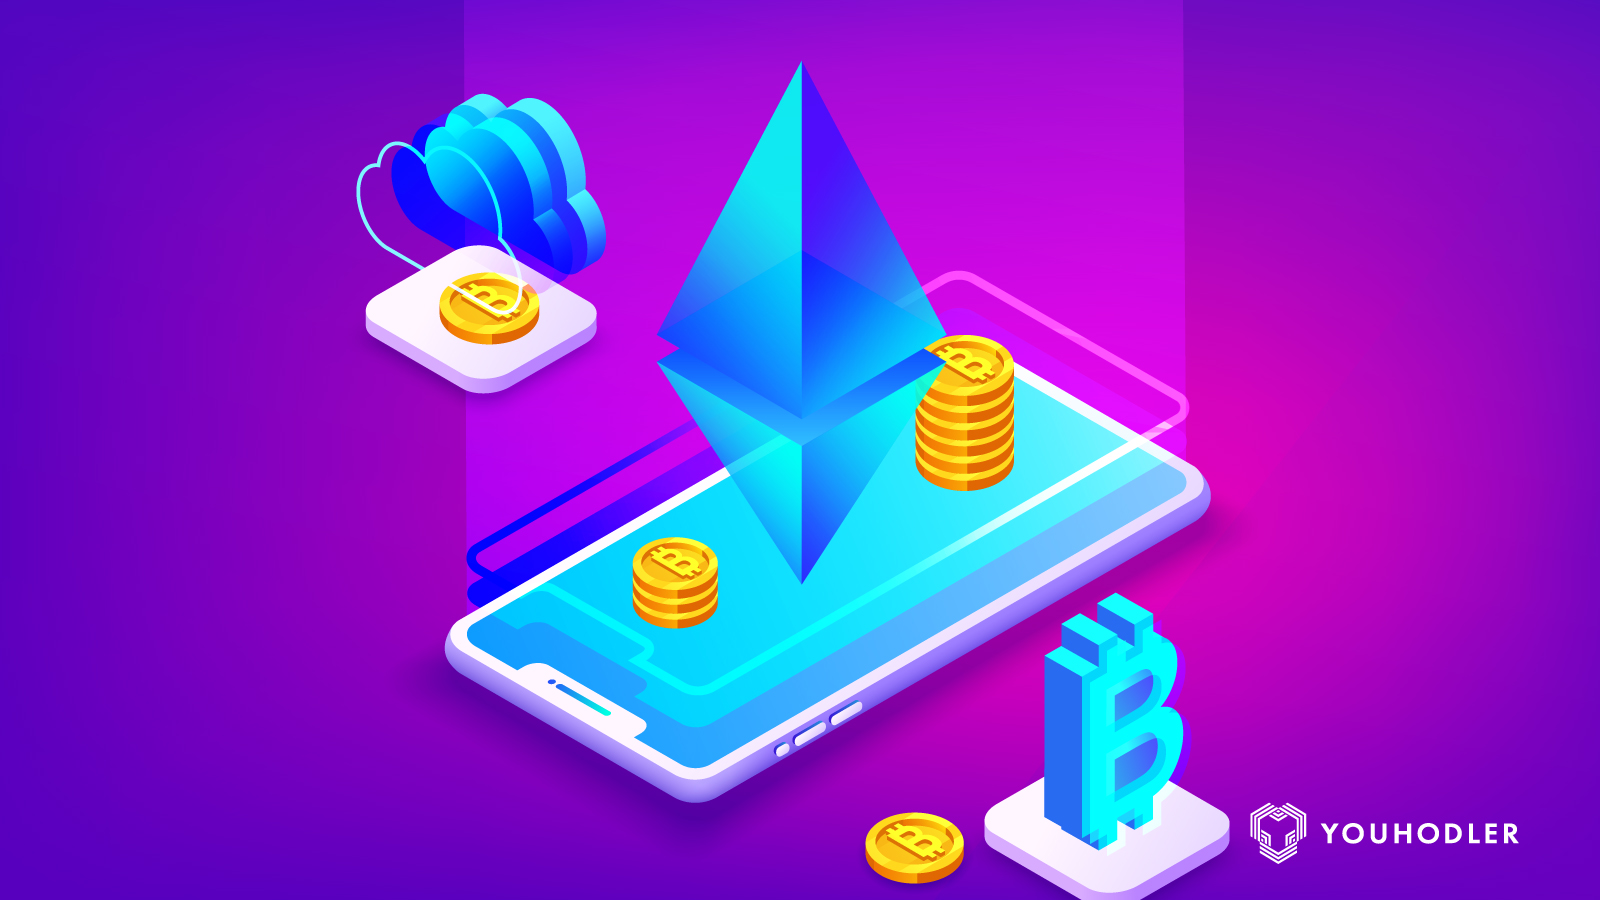 YouHodler's brand new mobile app is now available for free download for all iOS and Android mobile devices. The app is a compact version of the platform including a crypto-fiat wallet with all coin/tokens, fiat options and stablecoin options from YouHodler.